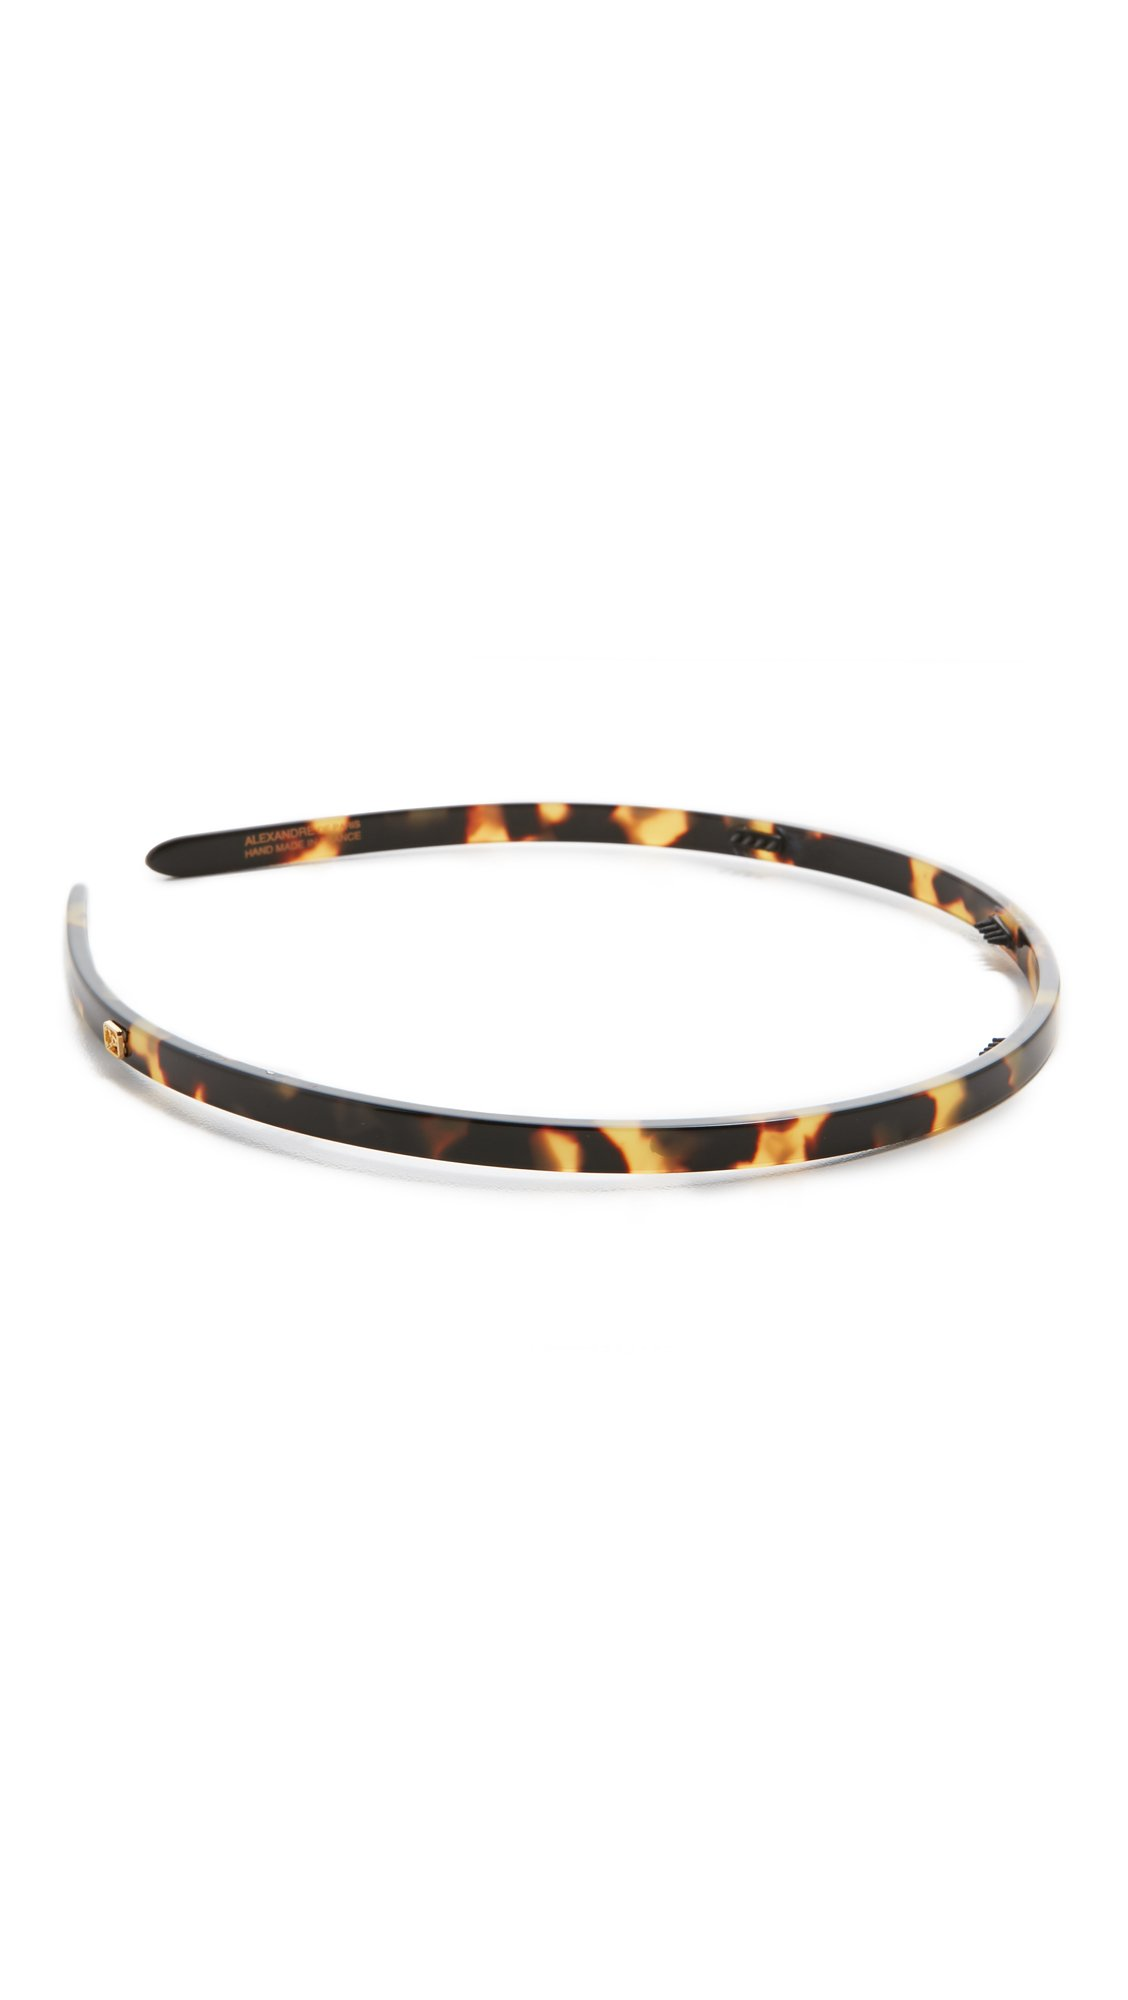 Alexandre de Paris Women's Thin Headband, Tokyo Tortoise, Brown, Print, One Size by Alexandre de Paris (Image #3)